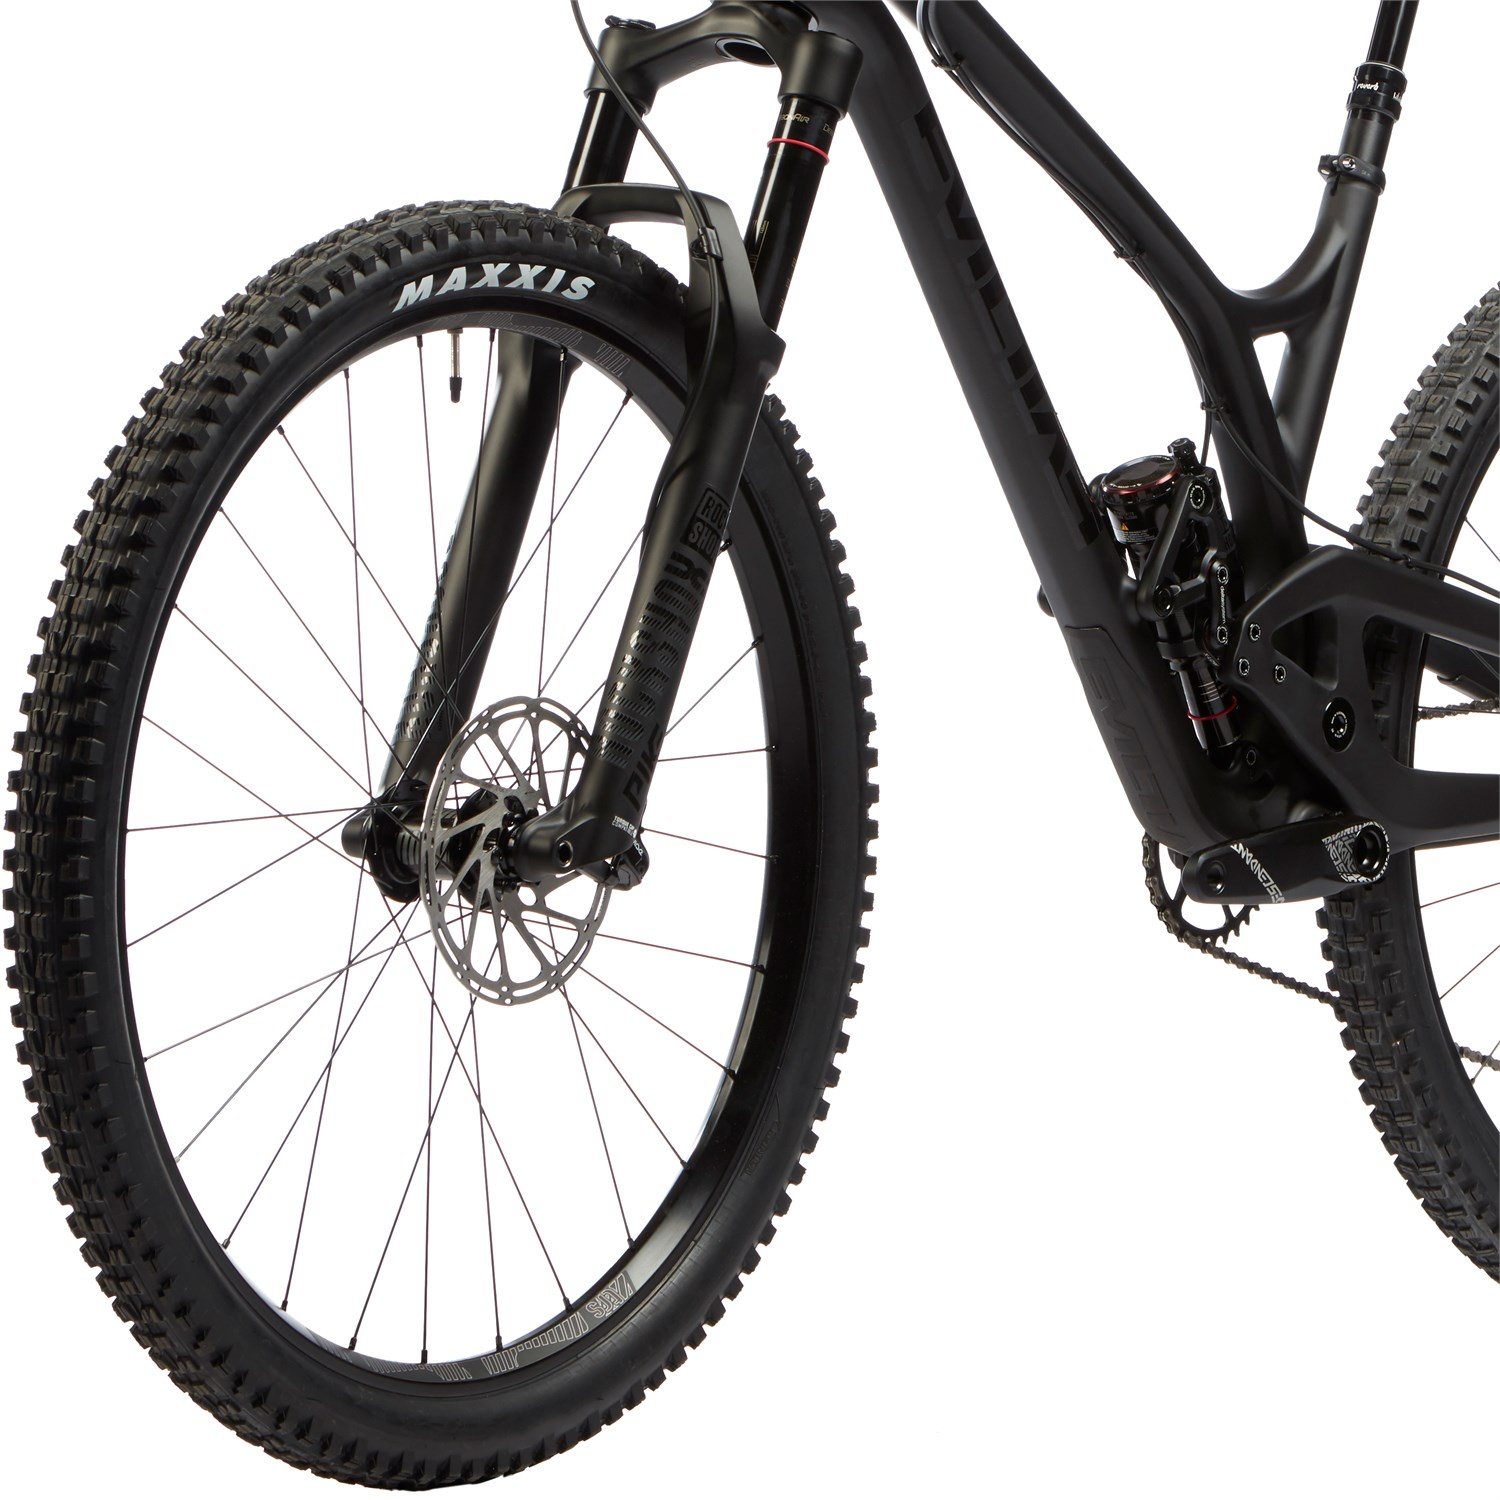 a719a89ba Evil Offering GX Eagle Complete Mountain Bike 2019